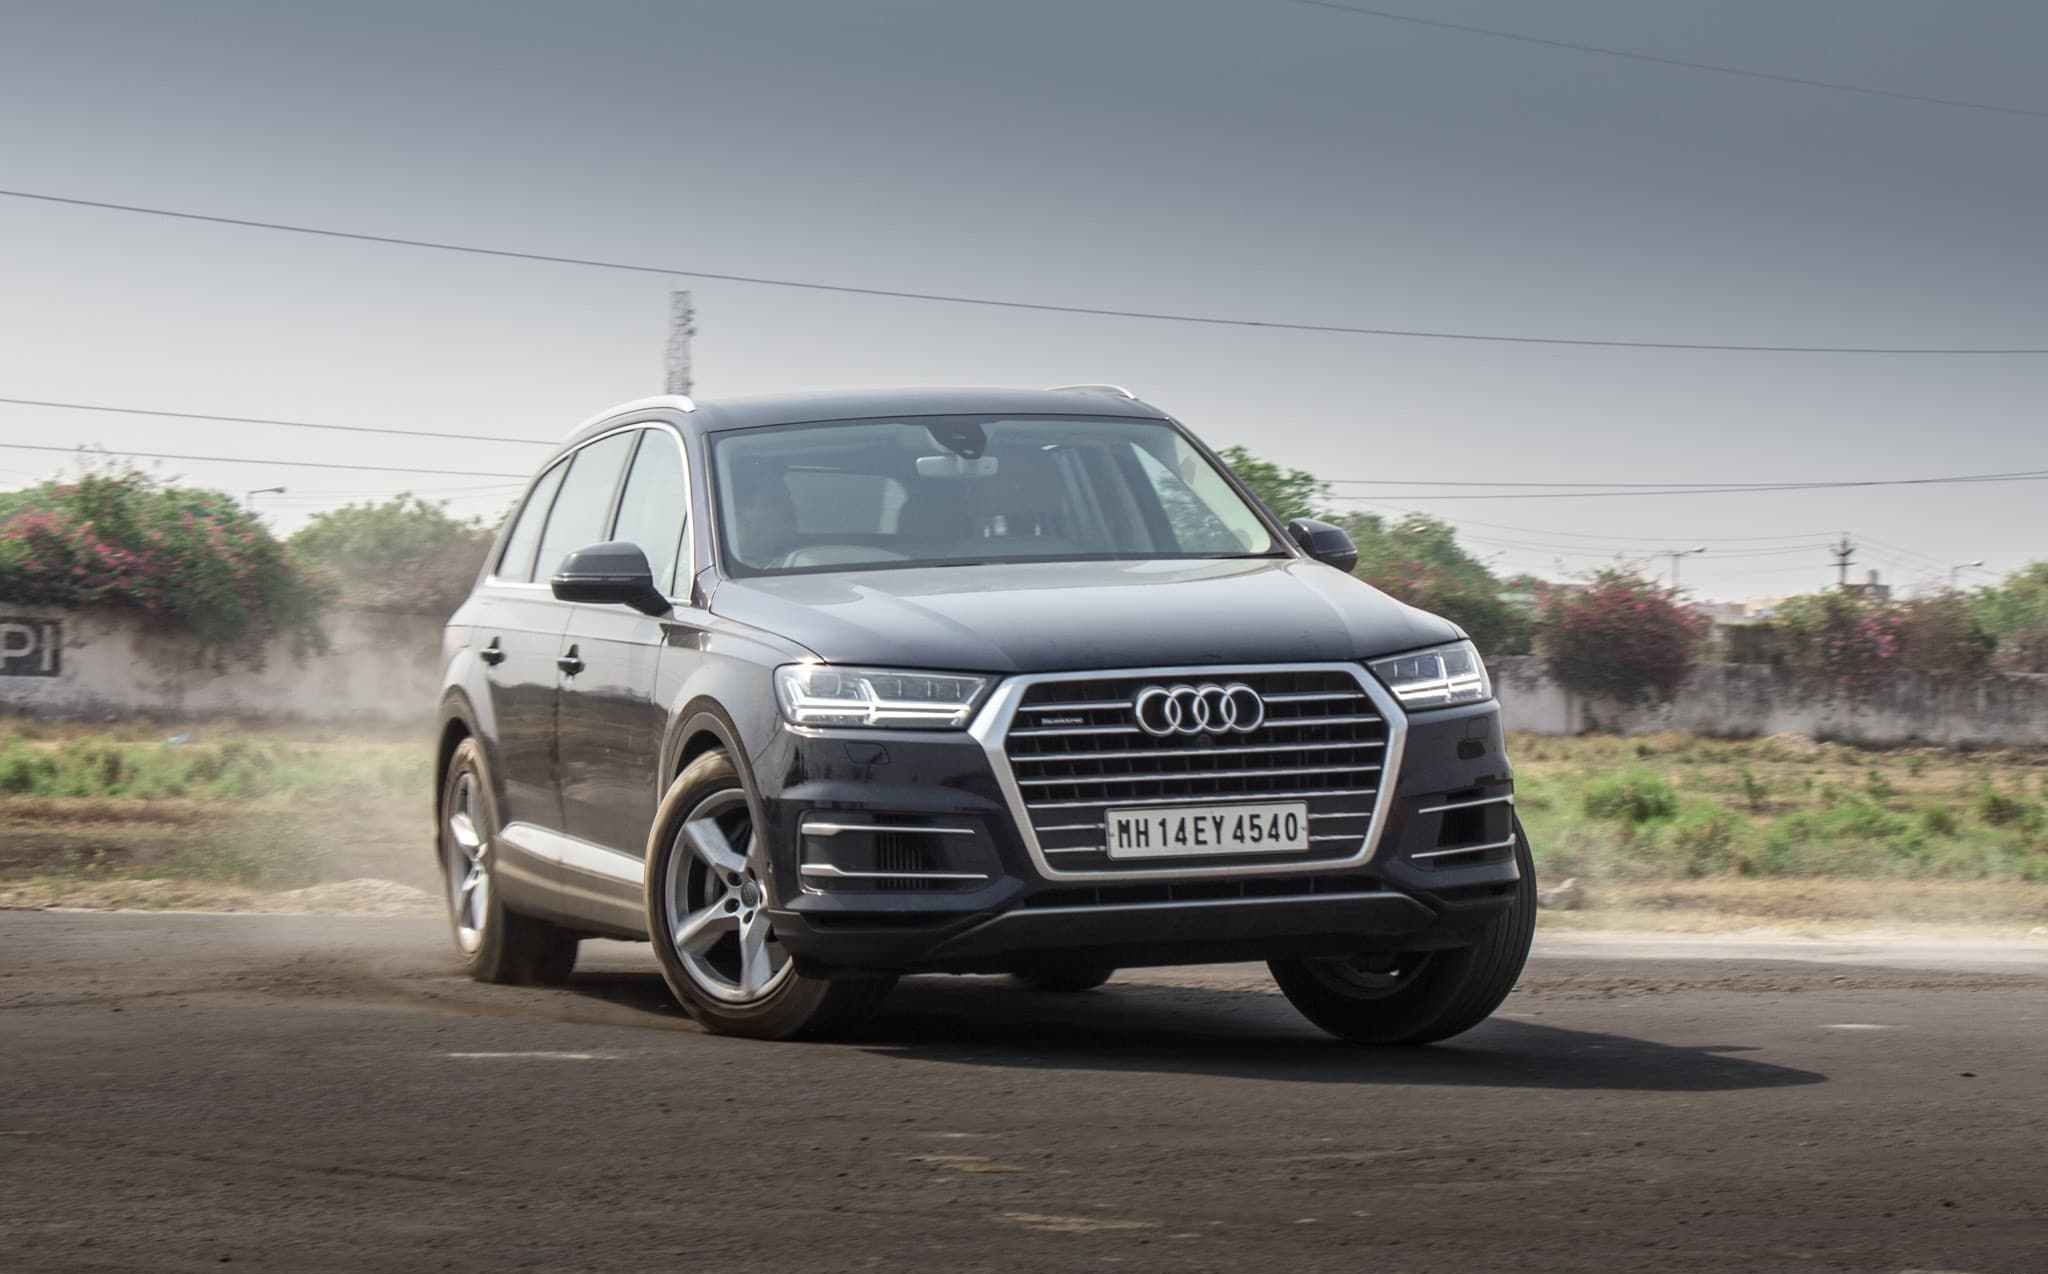 audi 33 photos · curated by satshree shrestha rs5 has 20 photos and 360 views. 2016 Audi Q7 Wallpapers Supercars Net